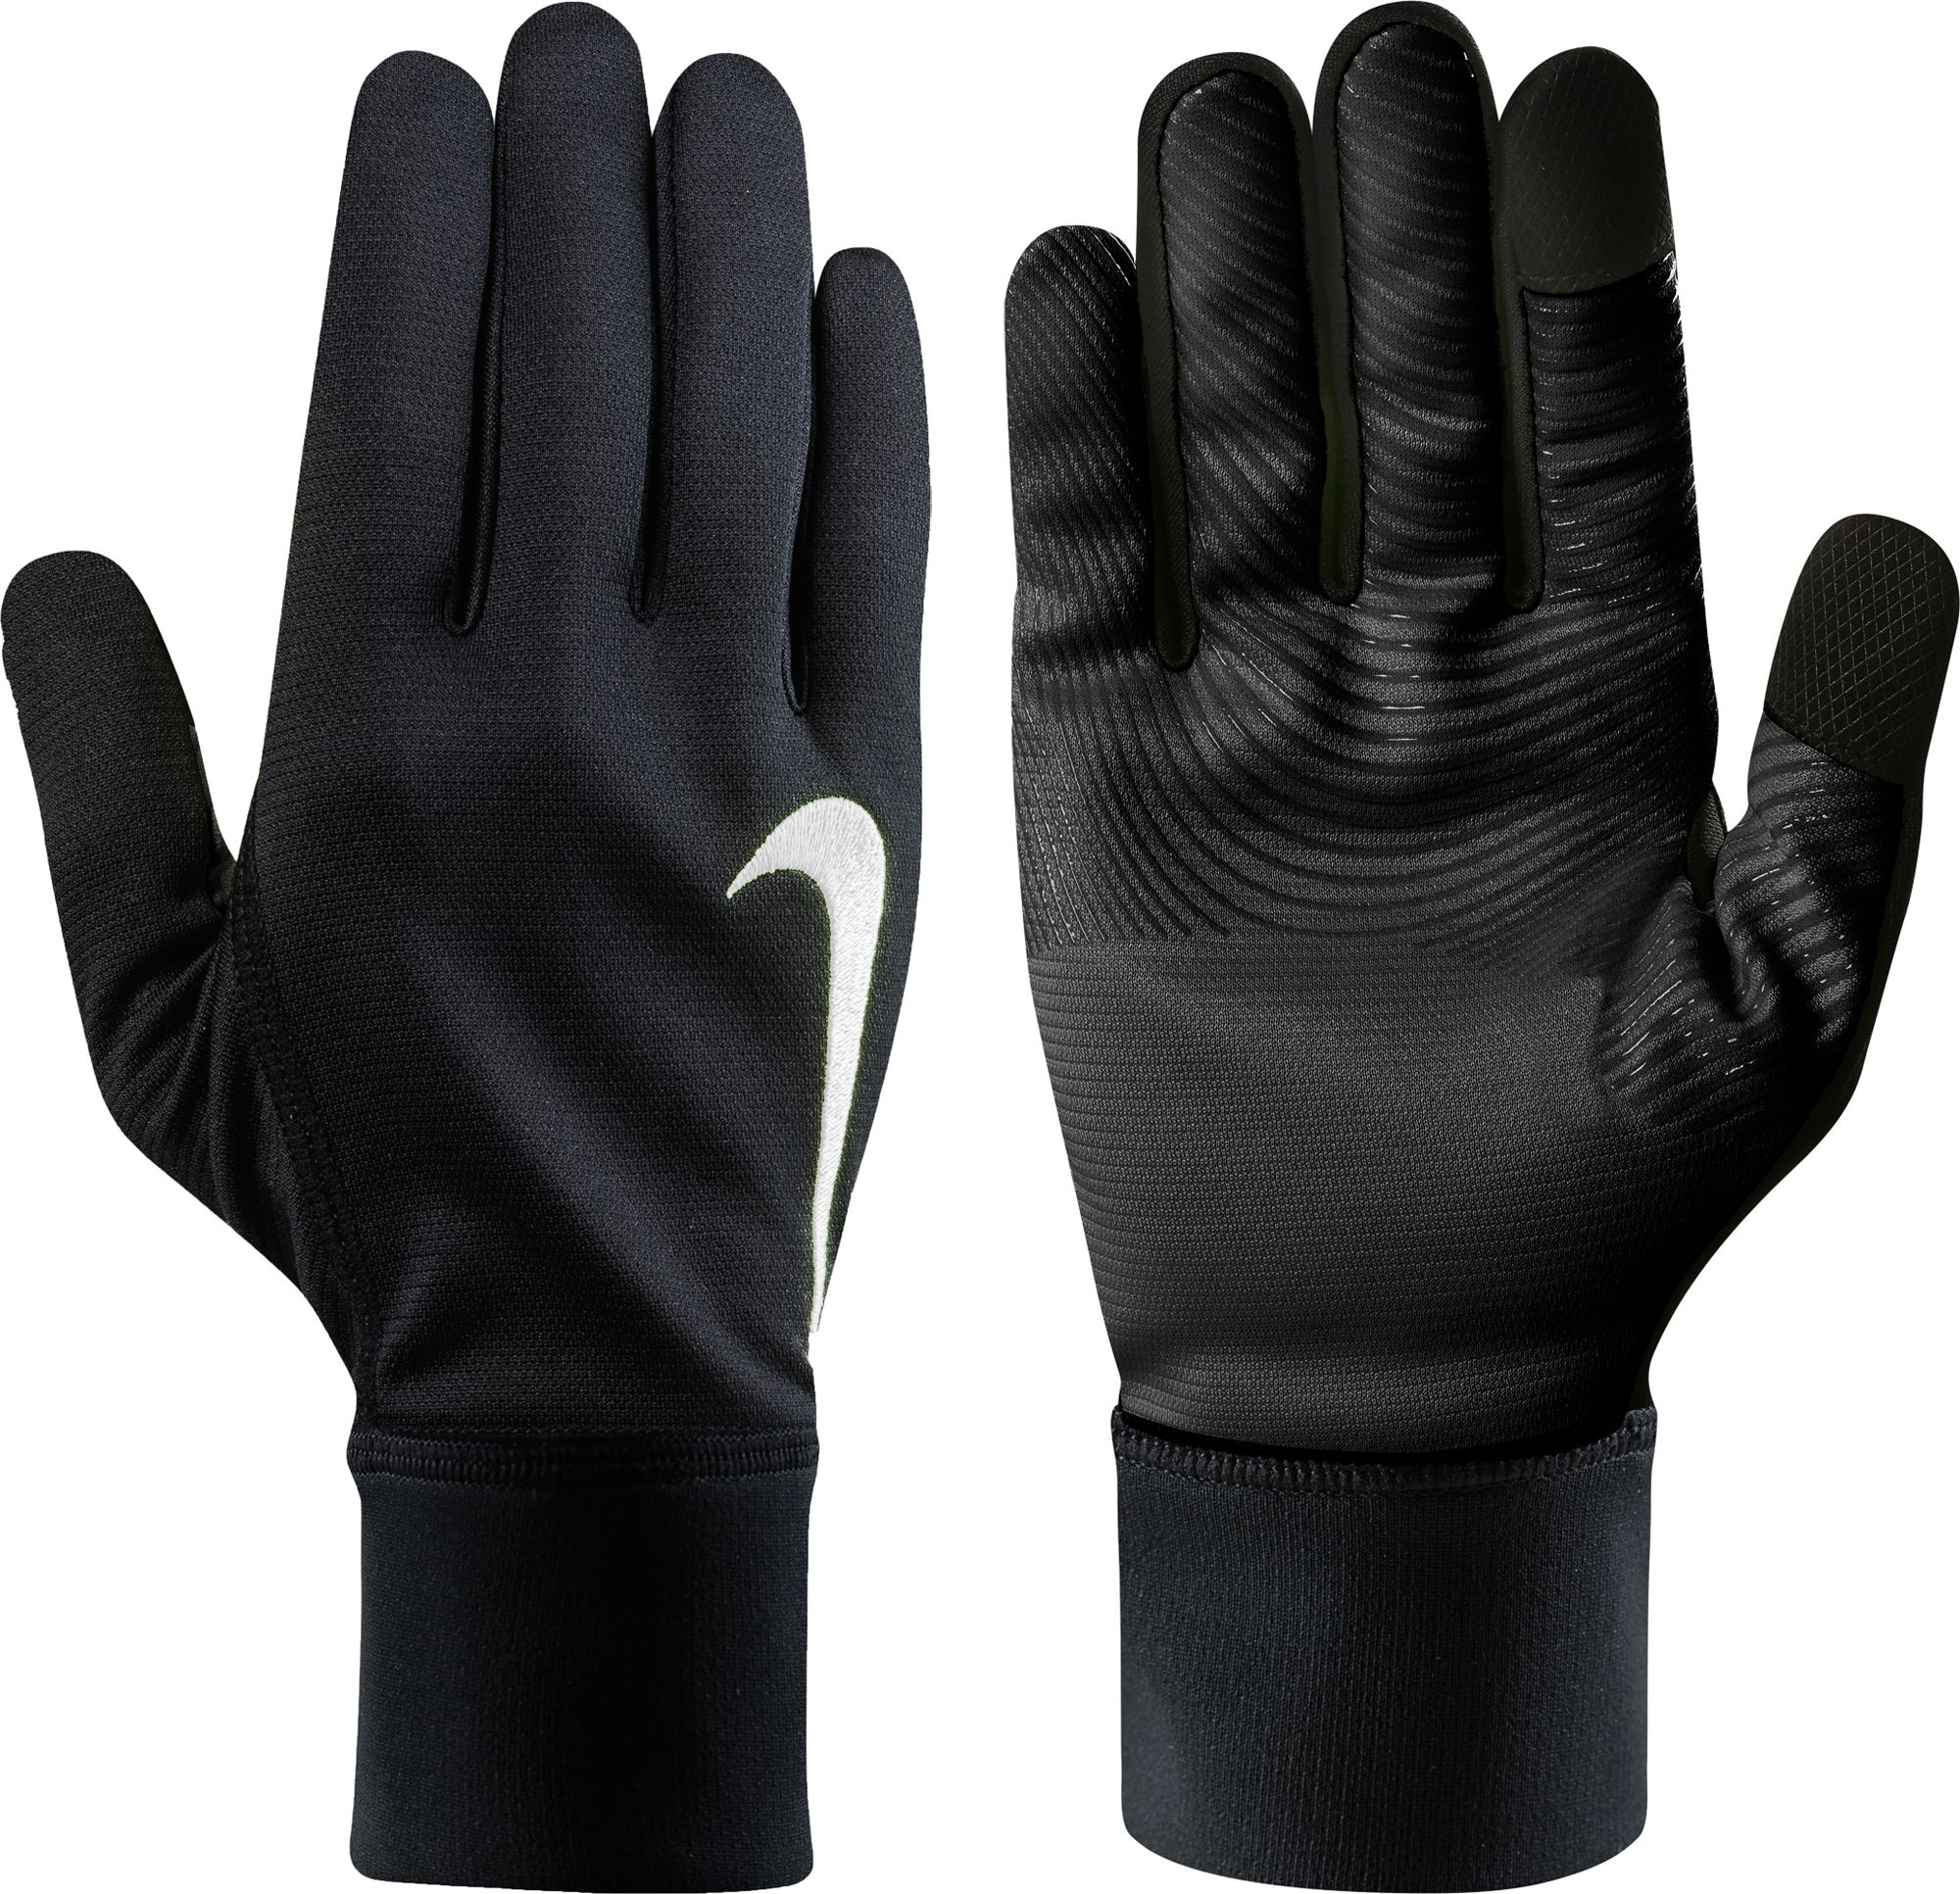 check out great fit buying new Nike Men's Therma-FIT Gloves | Nike men, Gloves, Best winter gloves